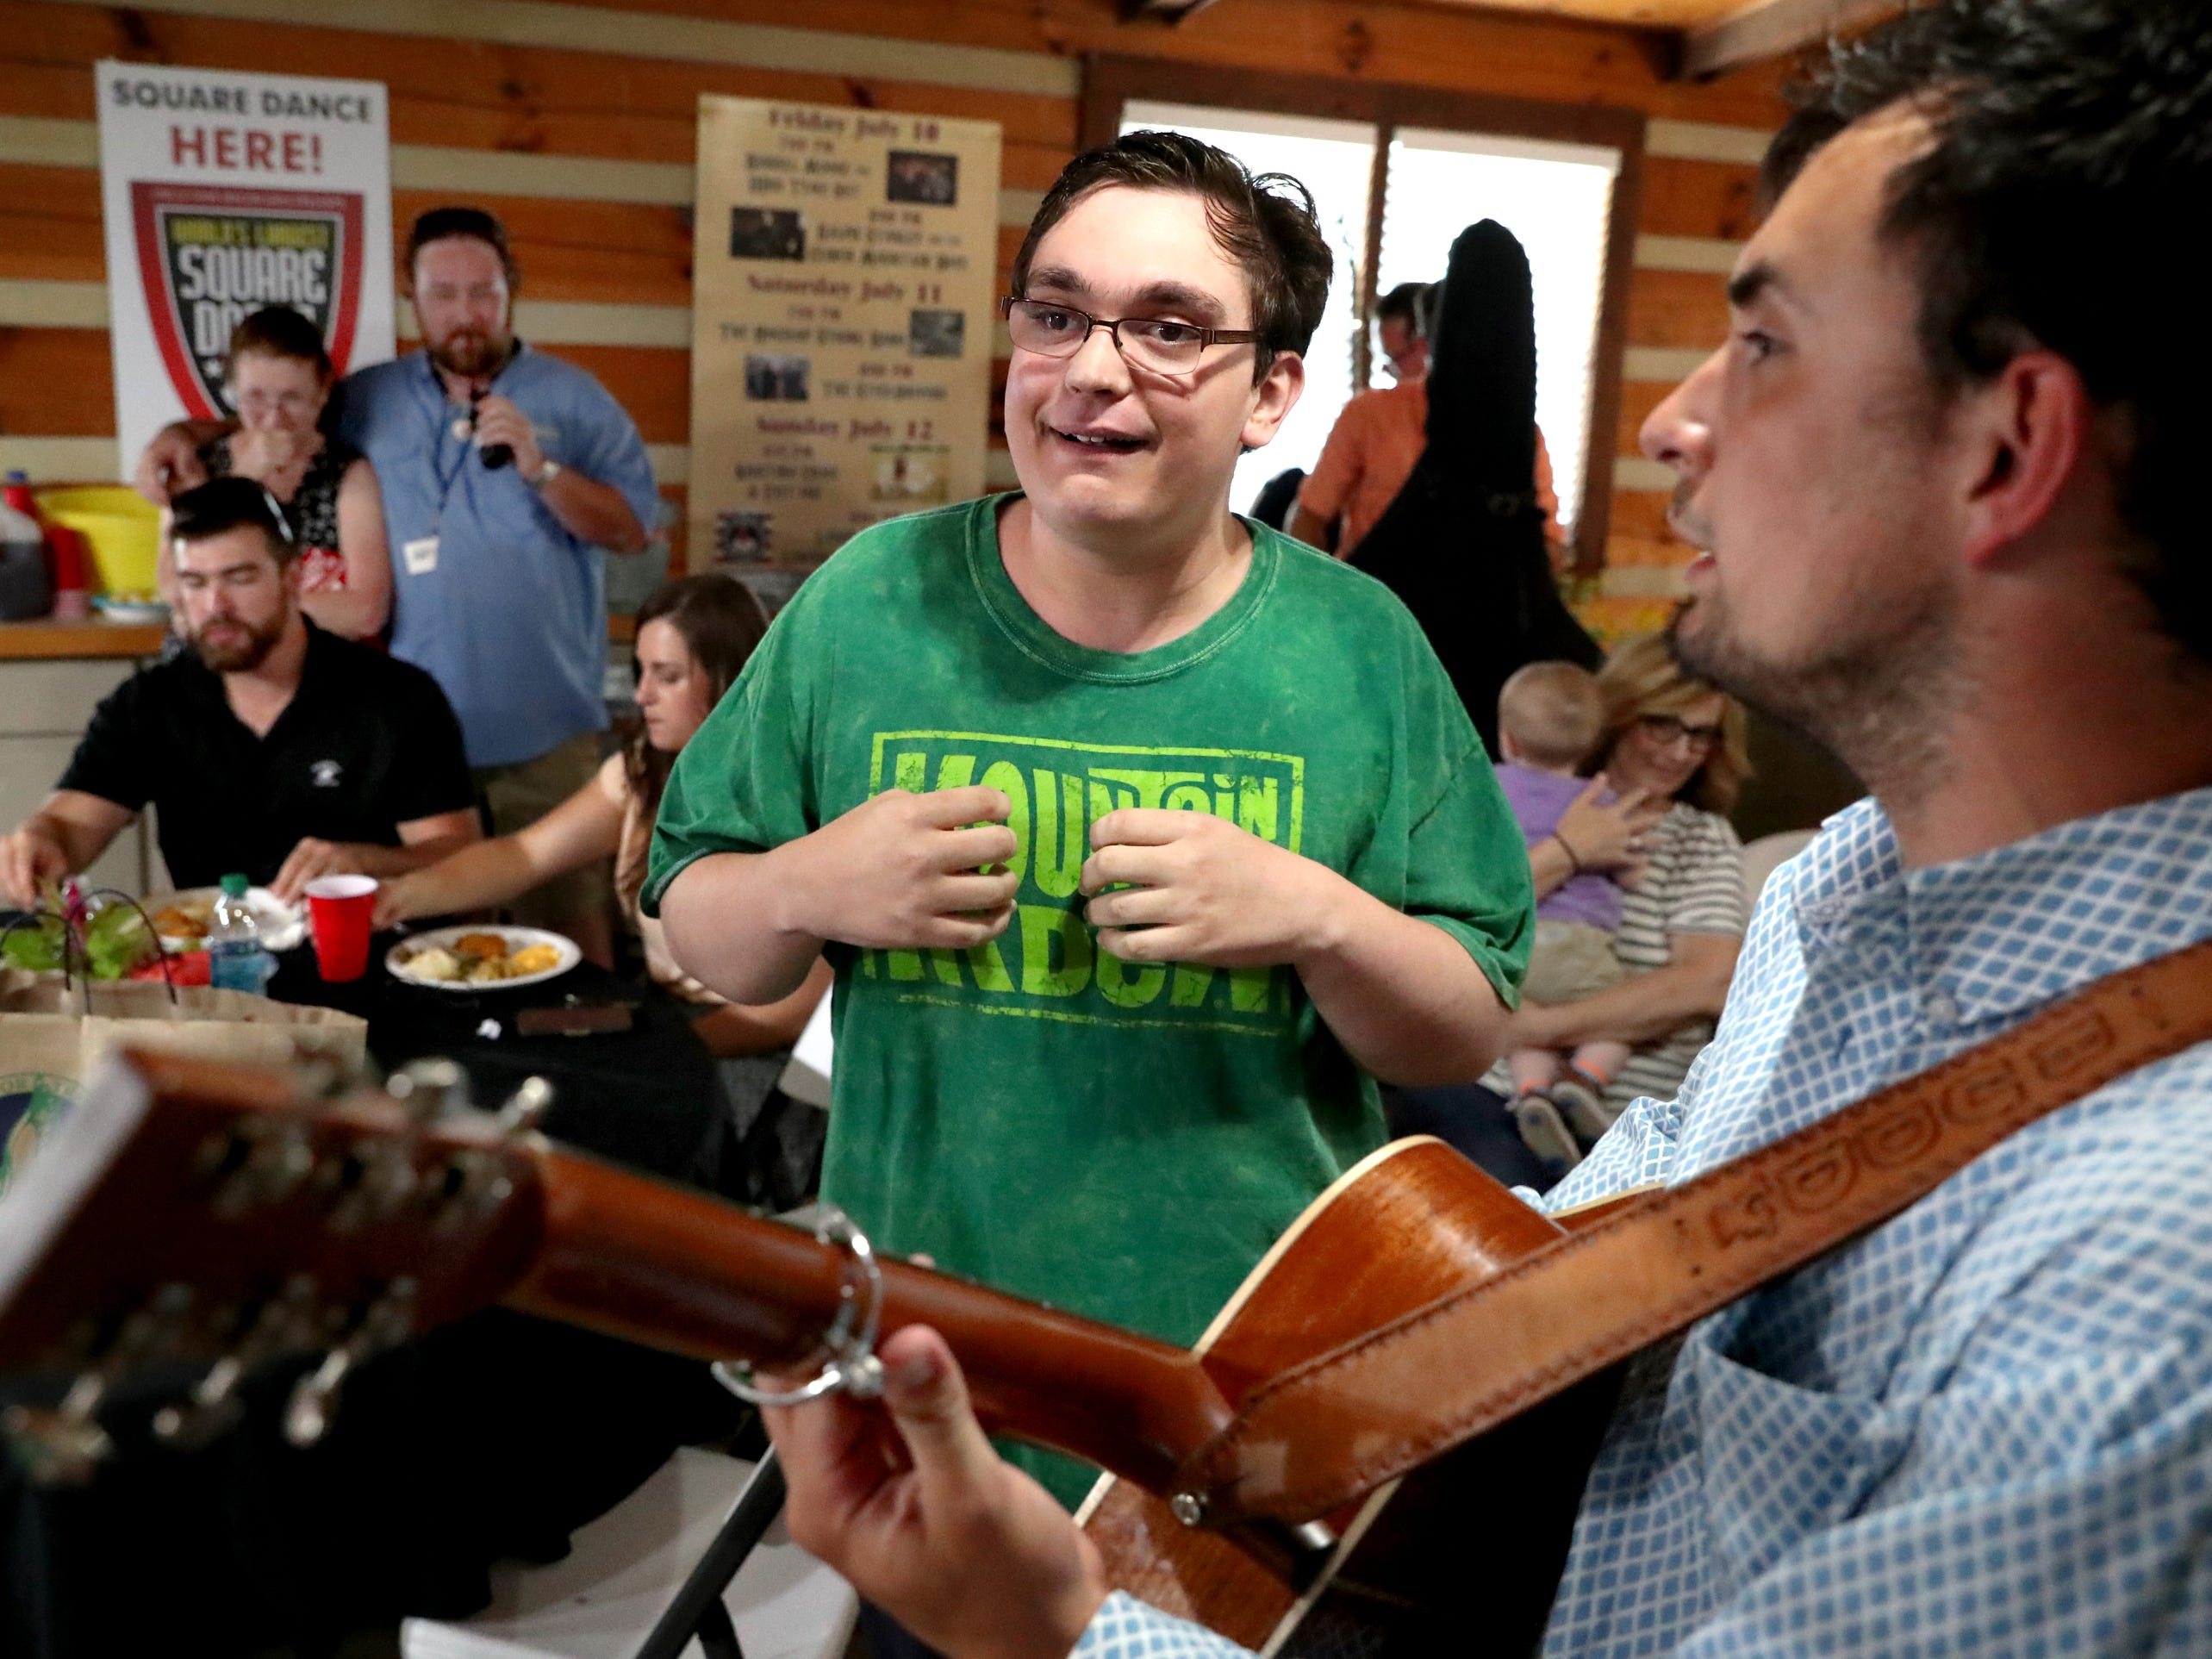 Kyle Nelson, who traveled from northern Minnesota, to see his favorite band Flatt Lonesome, sings with the band as he meets them before they perform at the 41st annual Uncle Dave Macon Days Festival on Friday, July 13, 2018.